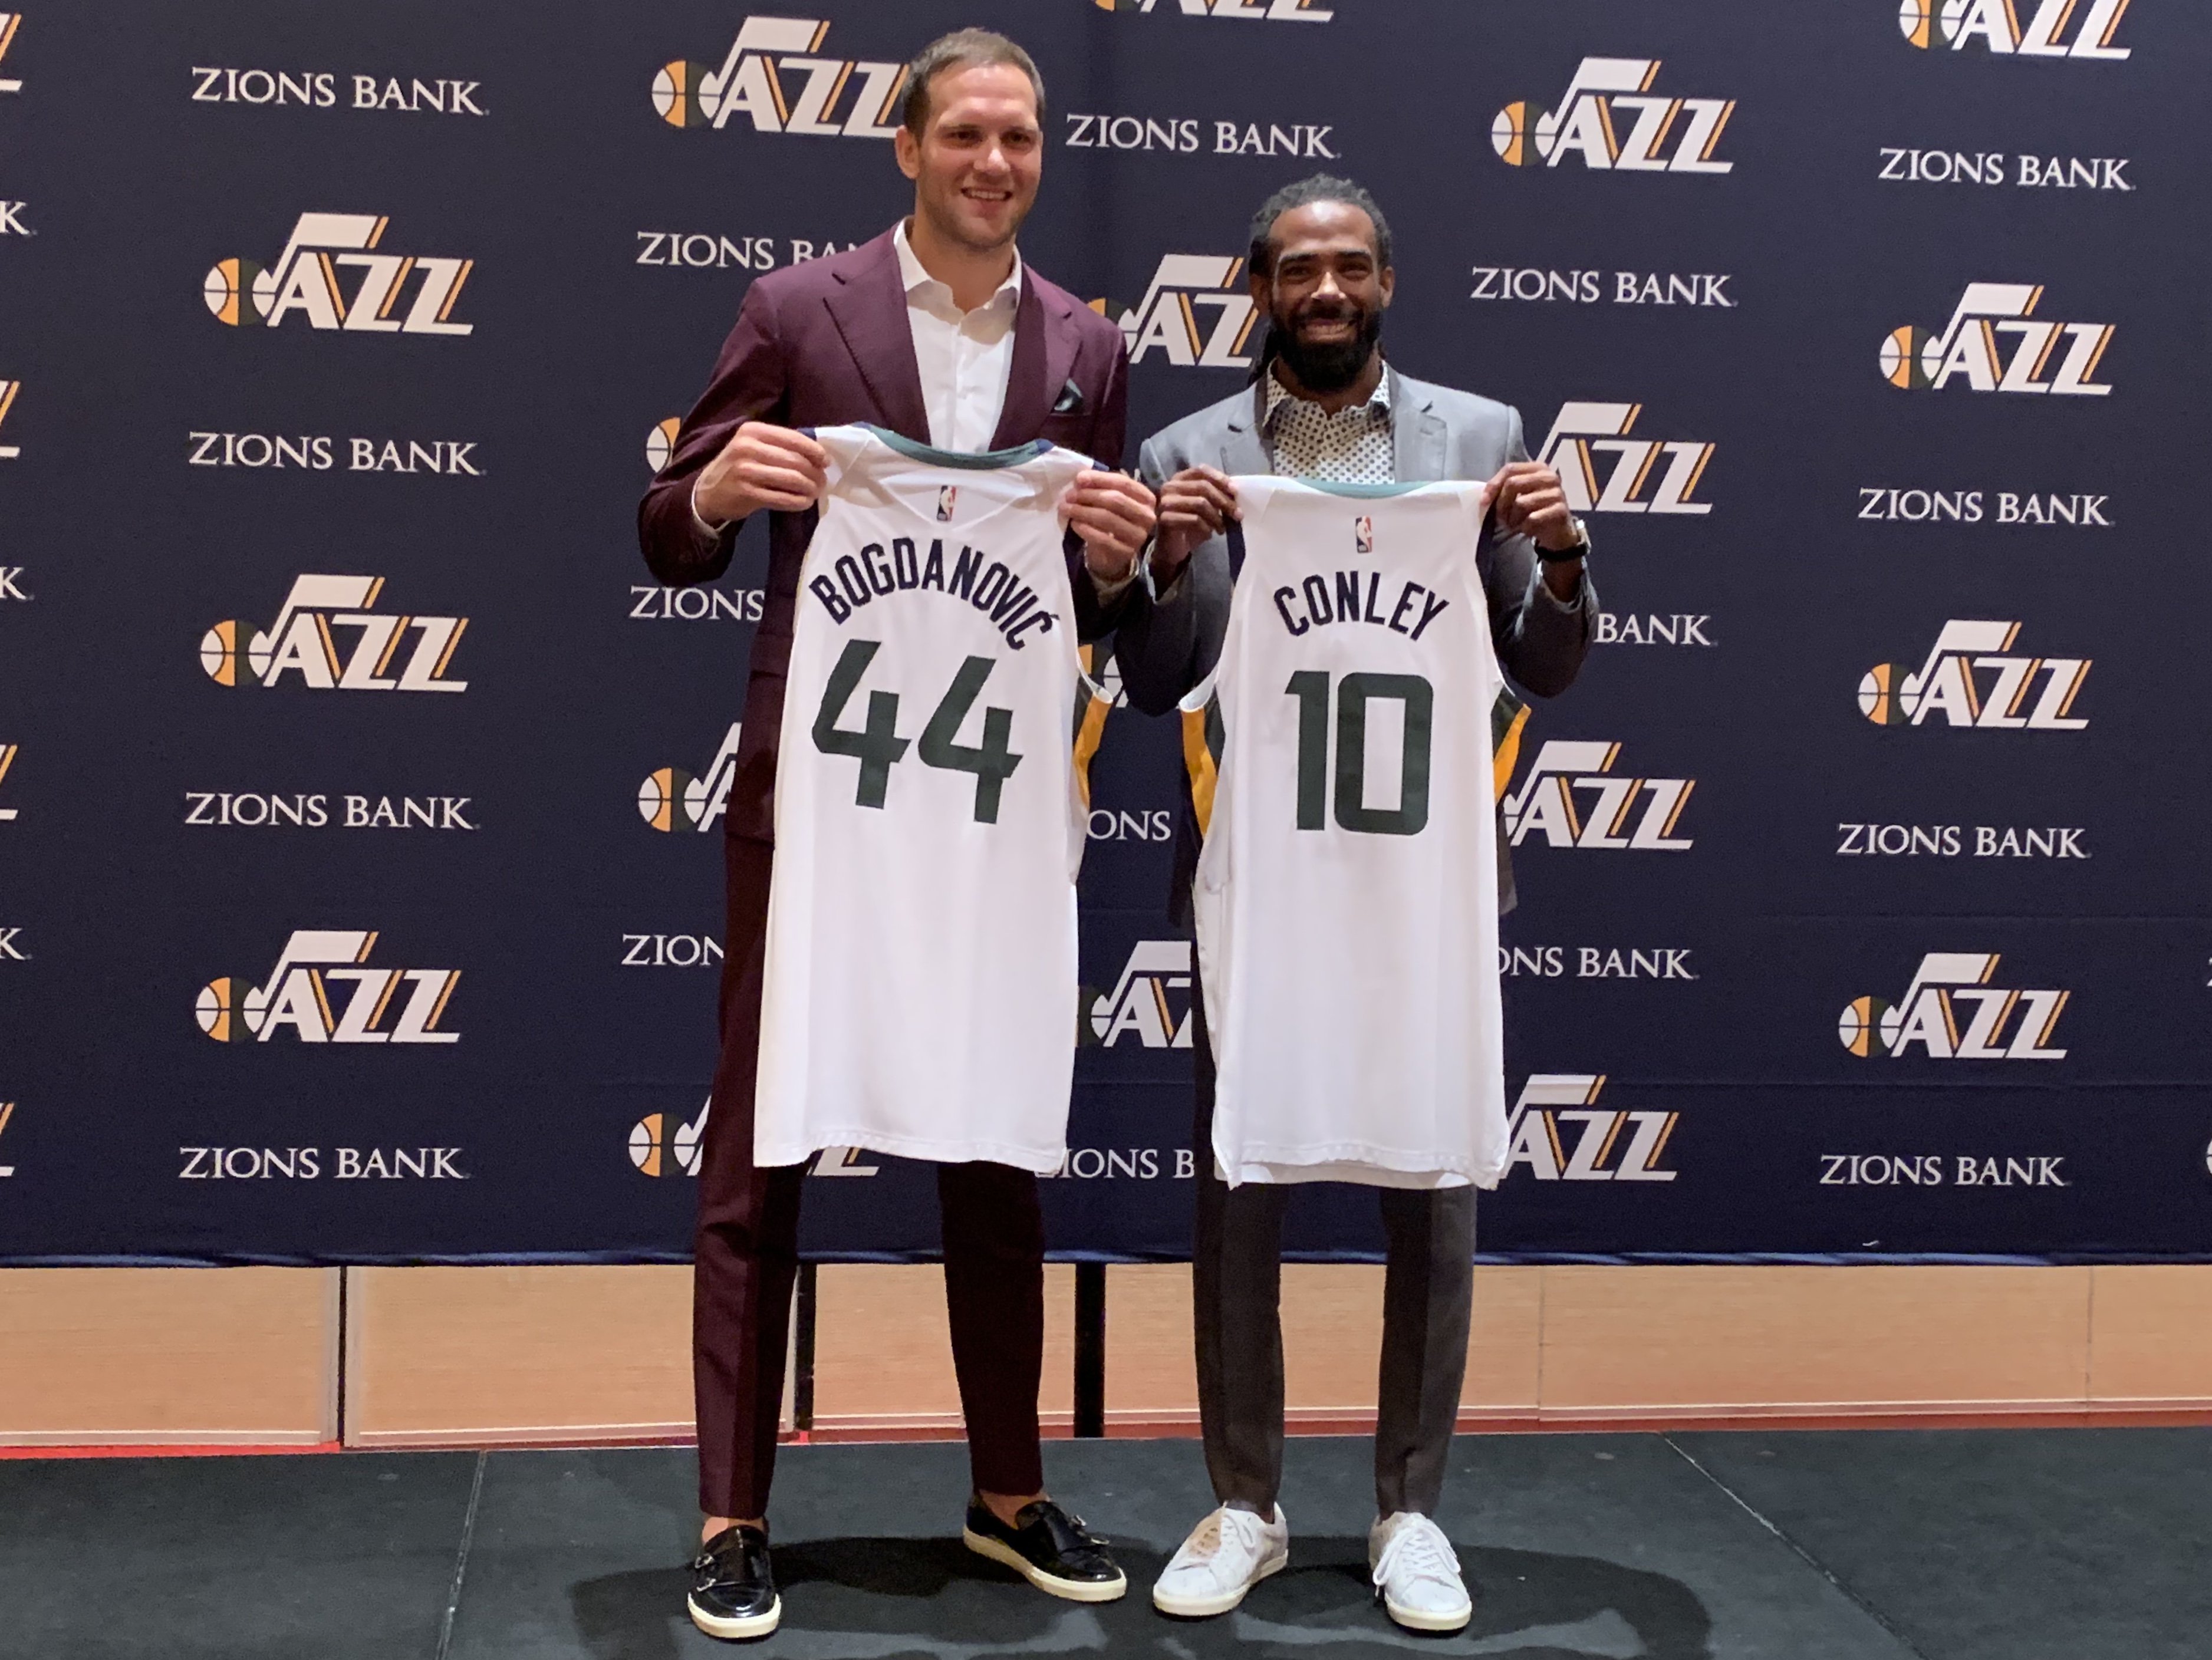 Mike Conley and Bojan Bogdanovic participated in an introductory press conference for the Utah Jazz on Monday, July 8, 2019 in Las Vegas where they showcased their No. 10 and No. 44 jerseys.